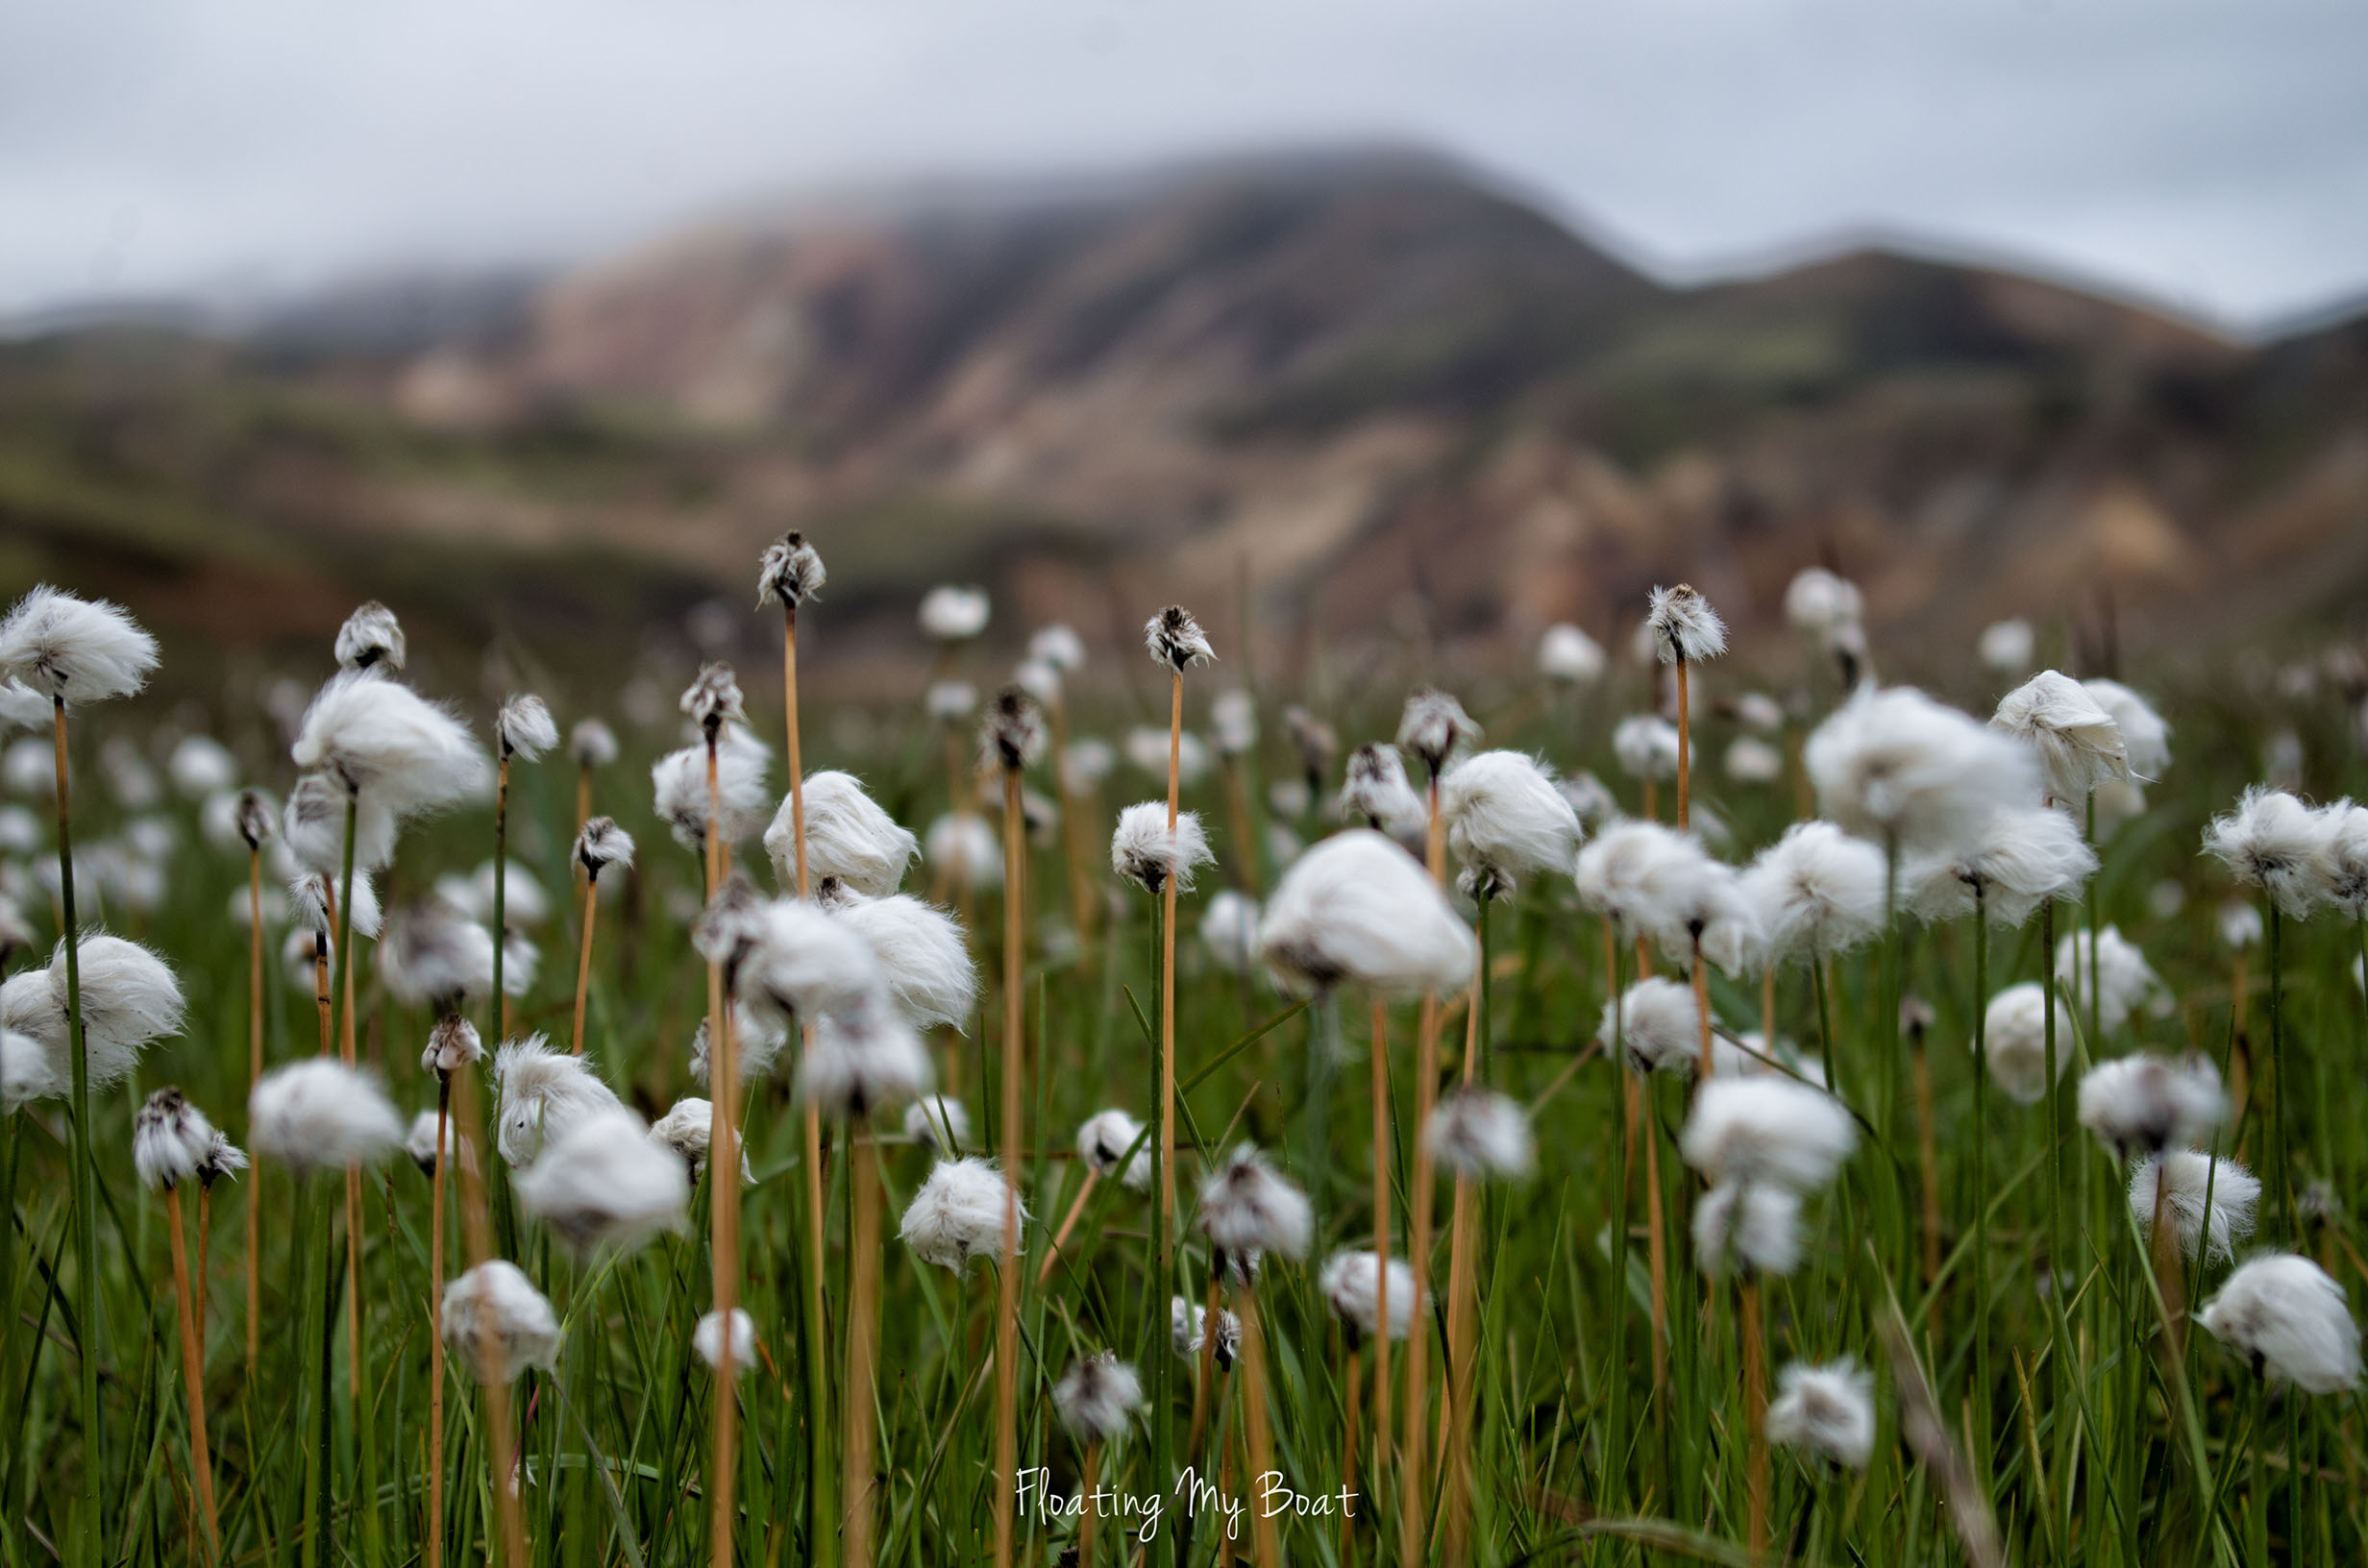 colourful-mountains-laugavegur-iceland-cotton-grass